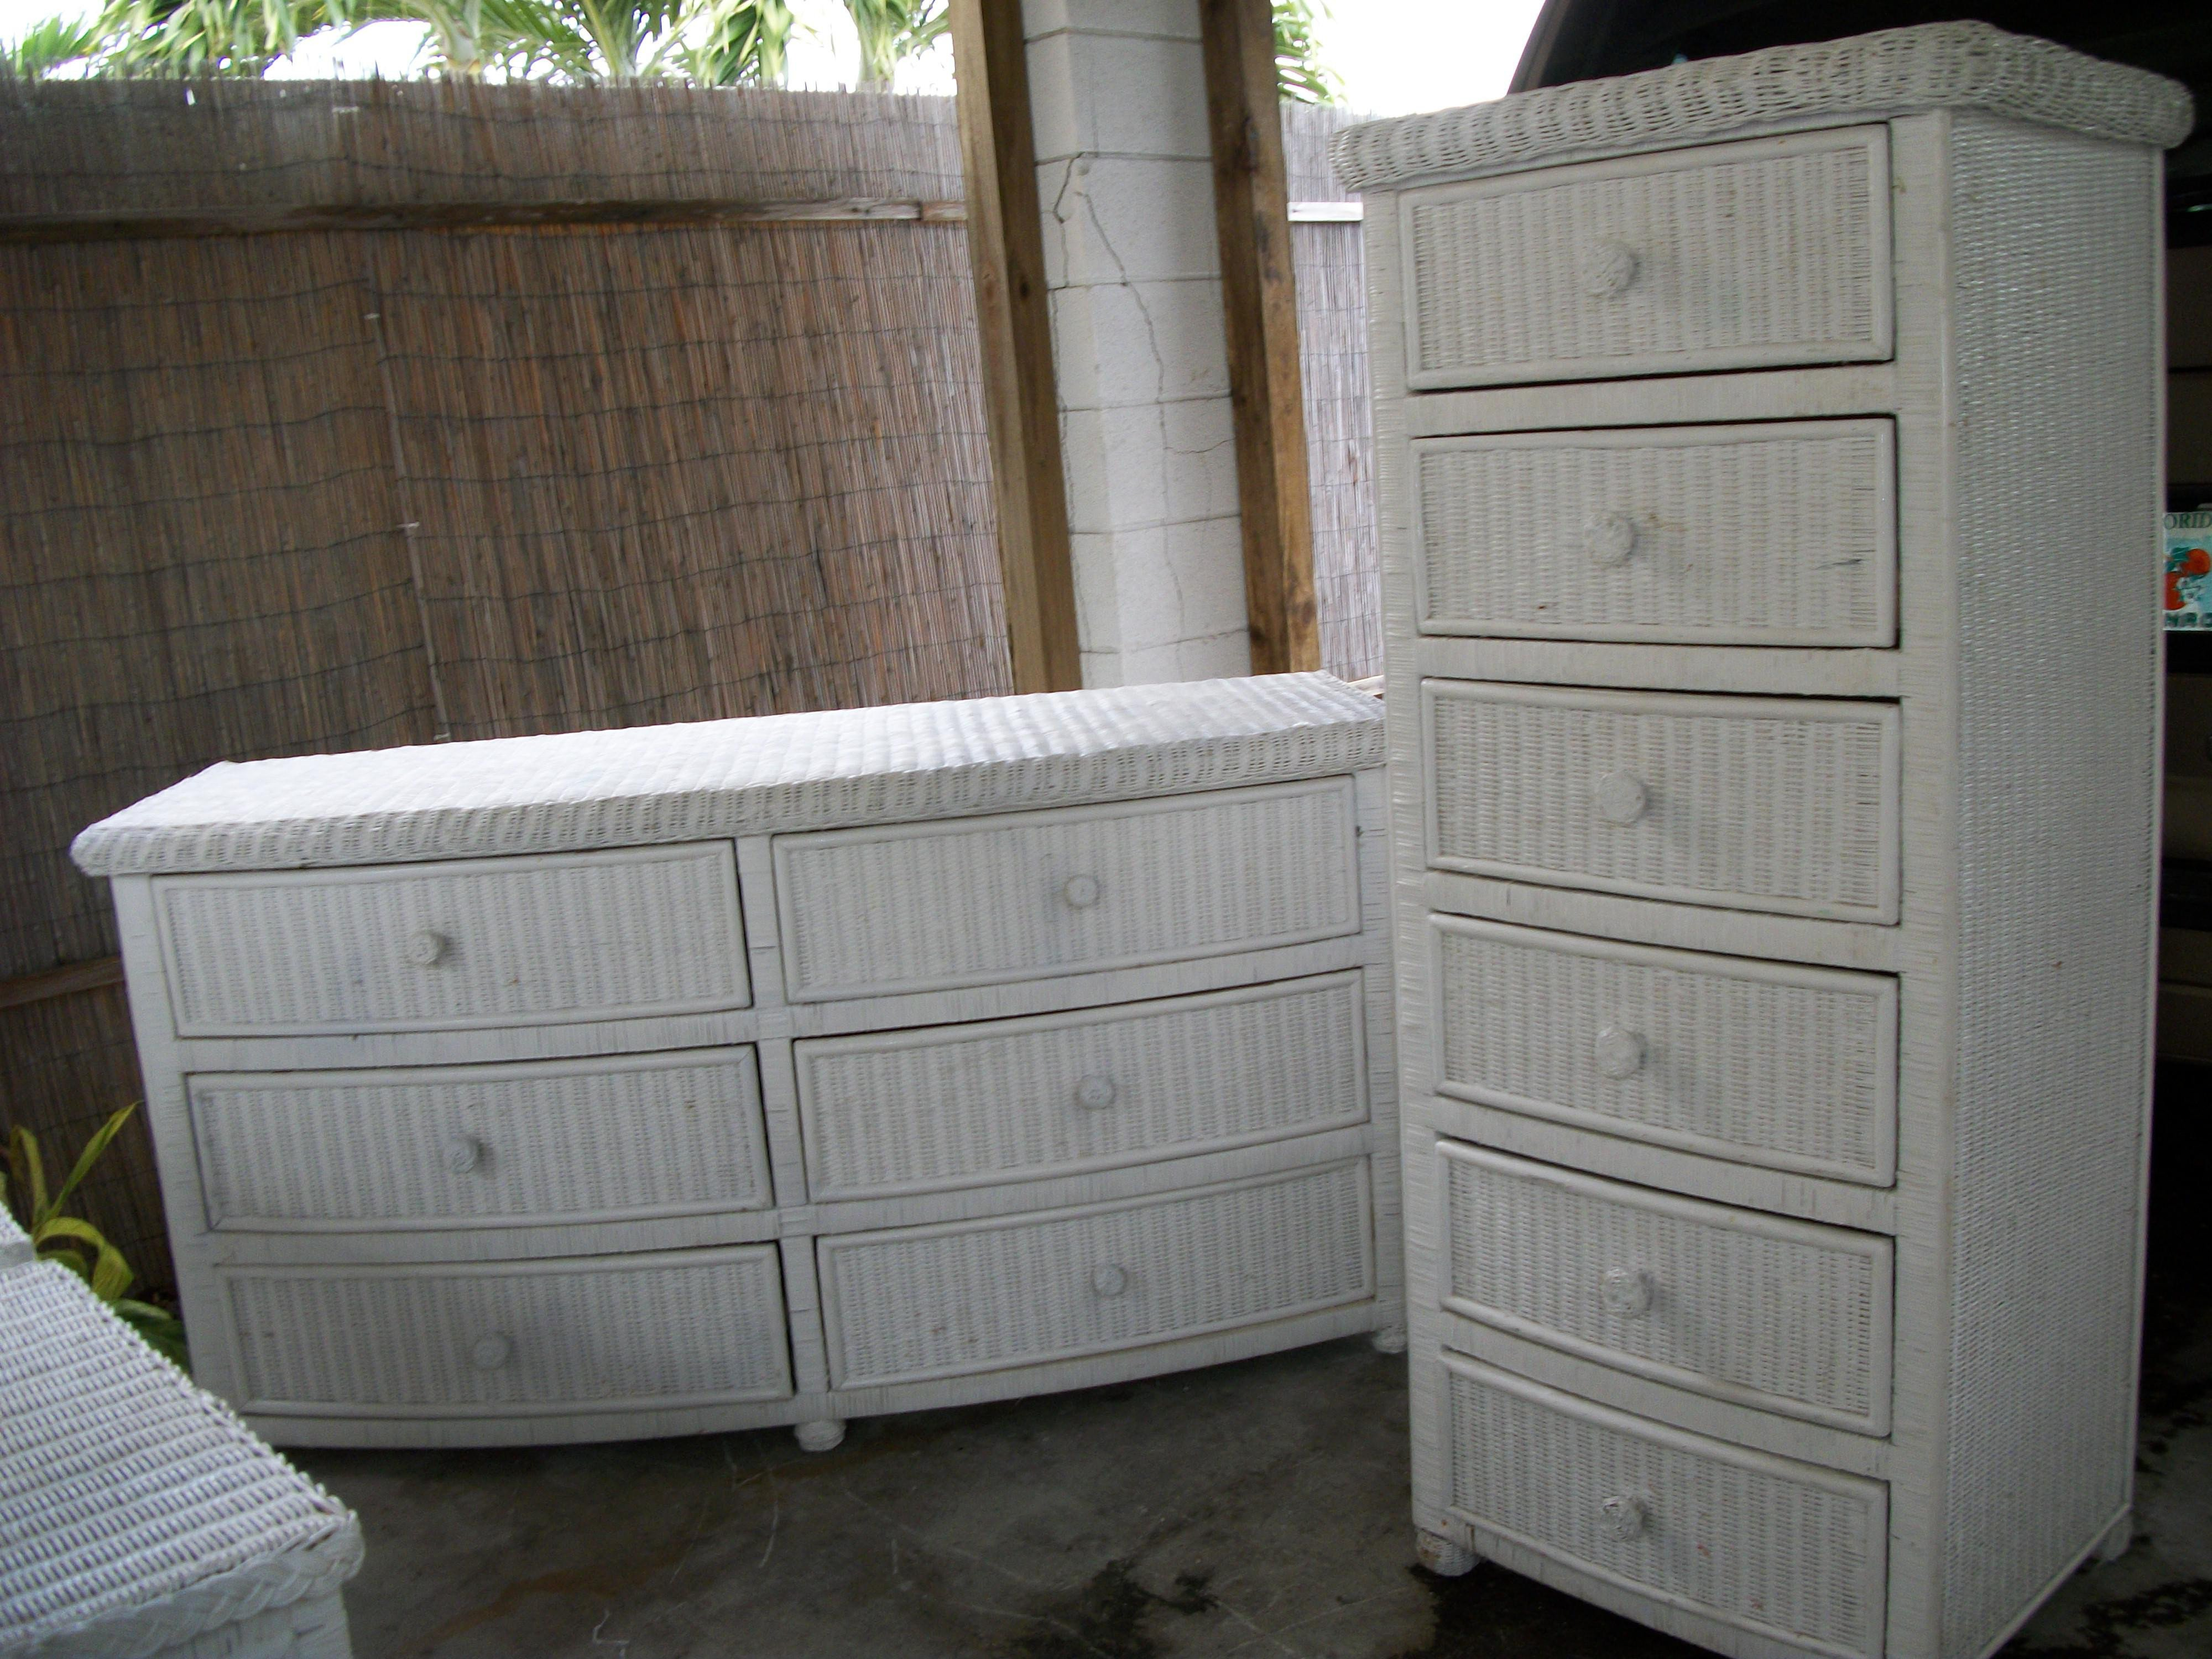 Pier One Bedroom Set Inspirational Used White Wicker Bedroom Furniture Design Idea and Decor